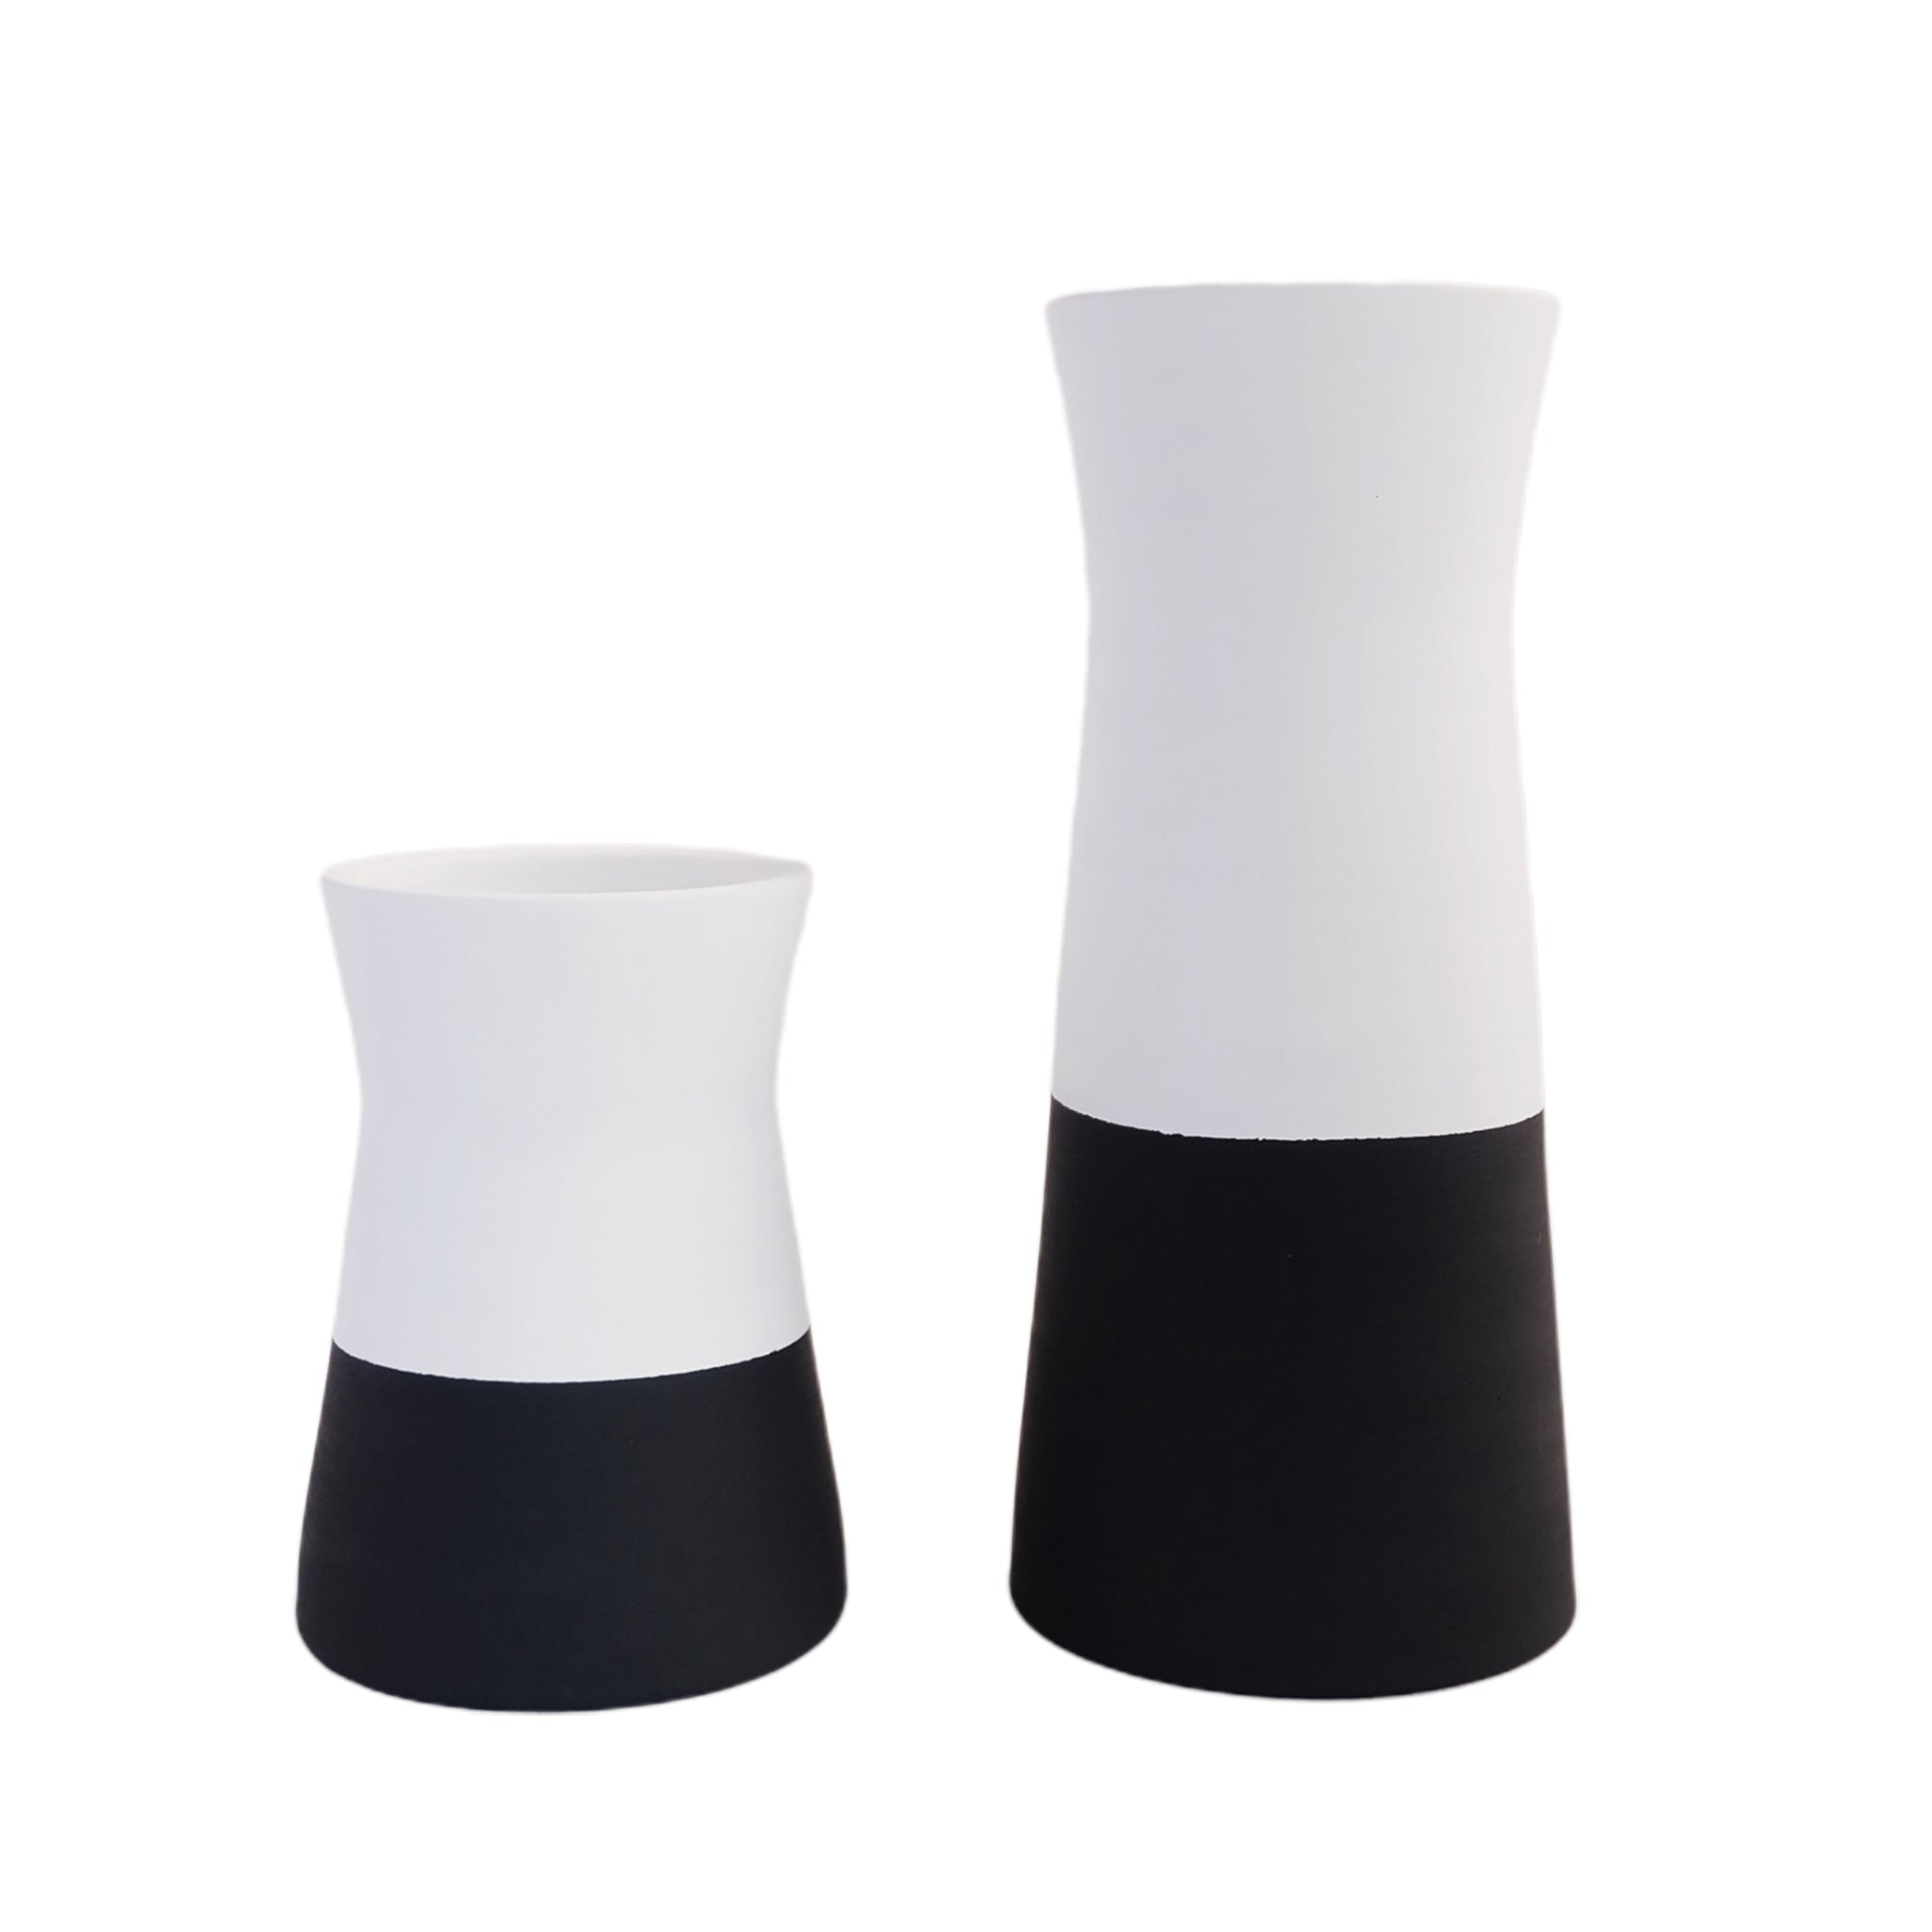 TIWI CERAMICS Nordic Vessel White-Black